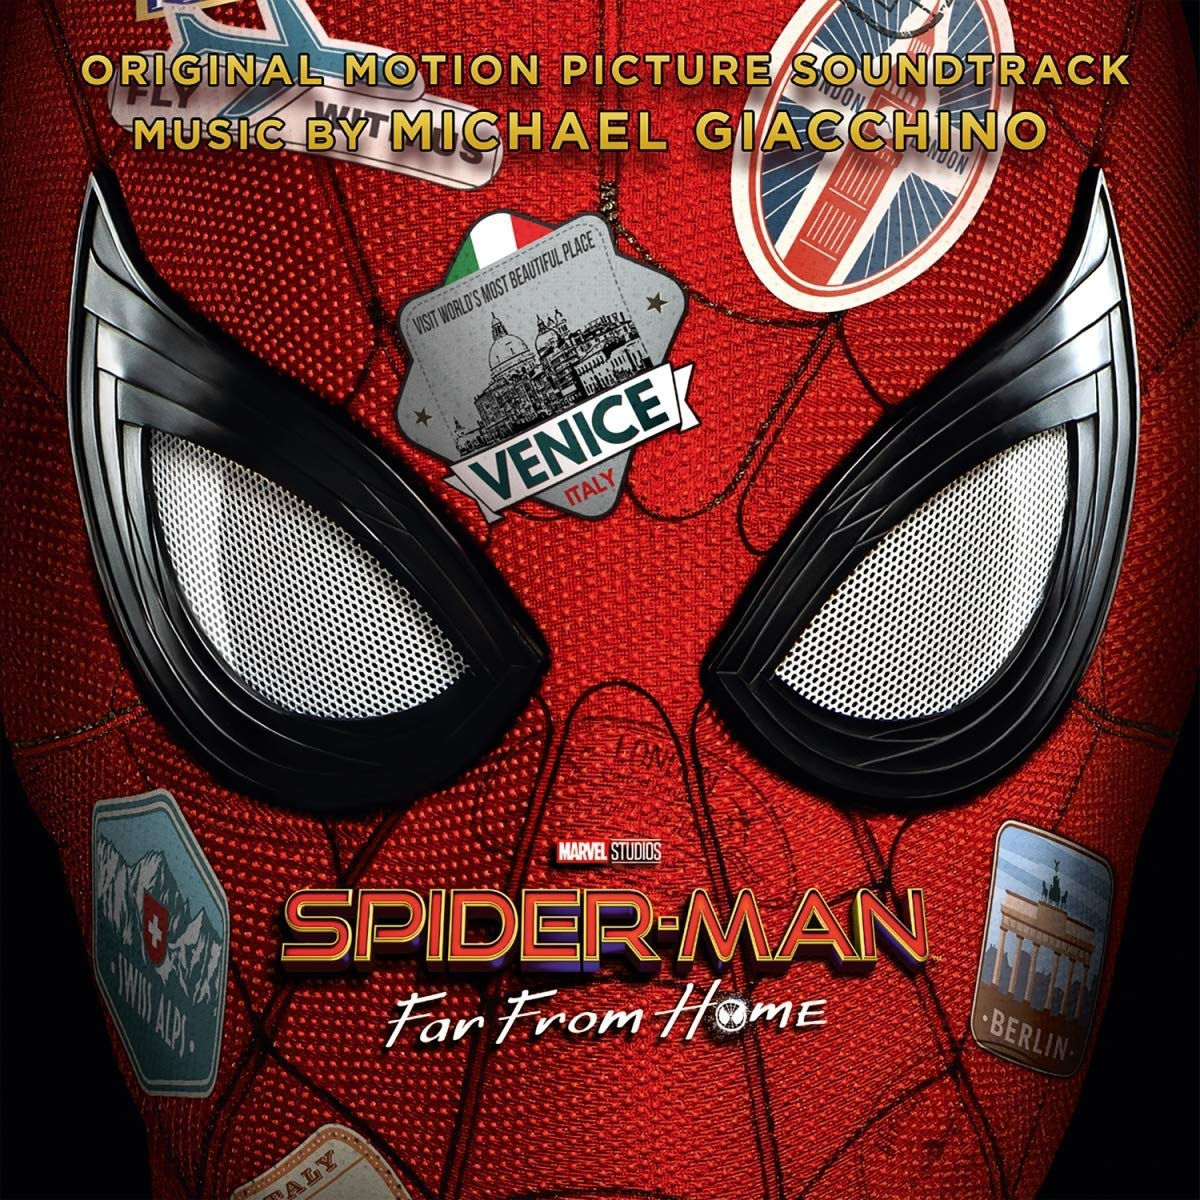 Spider-man - Far from home (2019) (vinile)